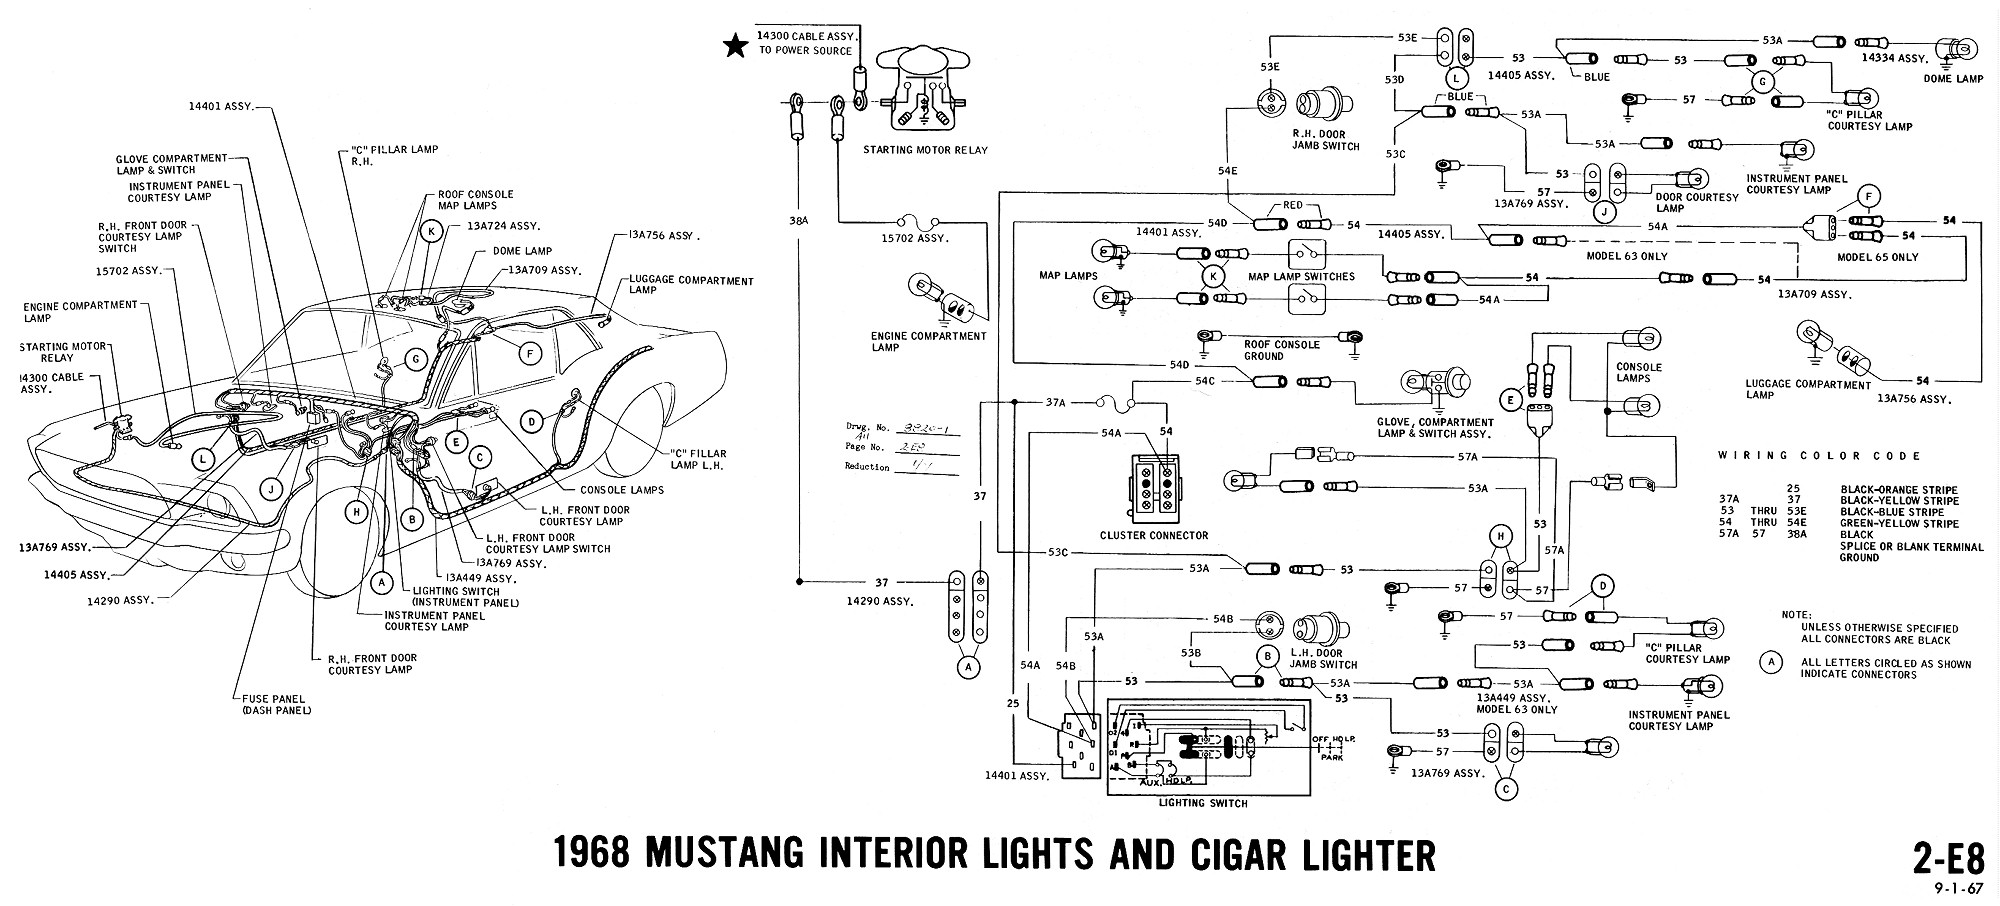 medium resolution of mustang fuse box 1968 electrical wiring diagrams 1990 mustang fuse panel diagram 1968 mustang fuse panel